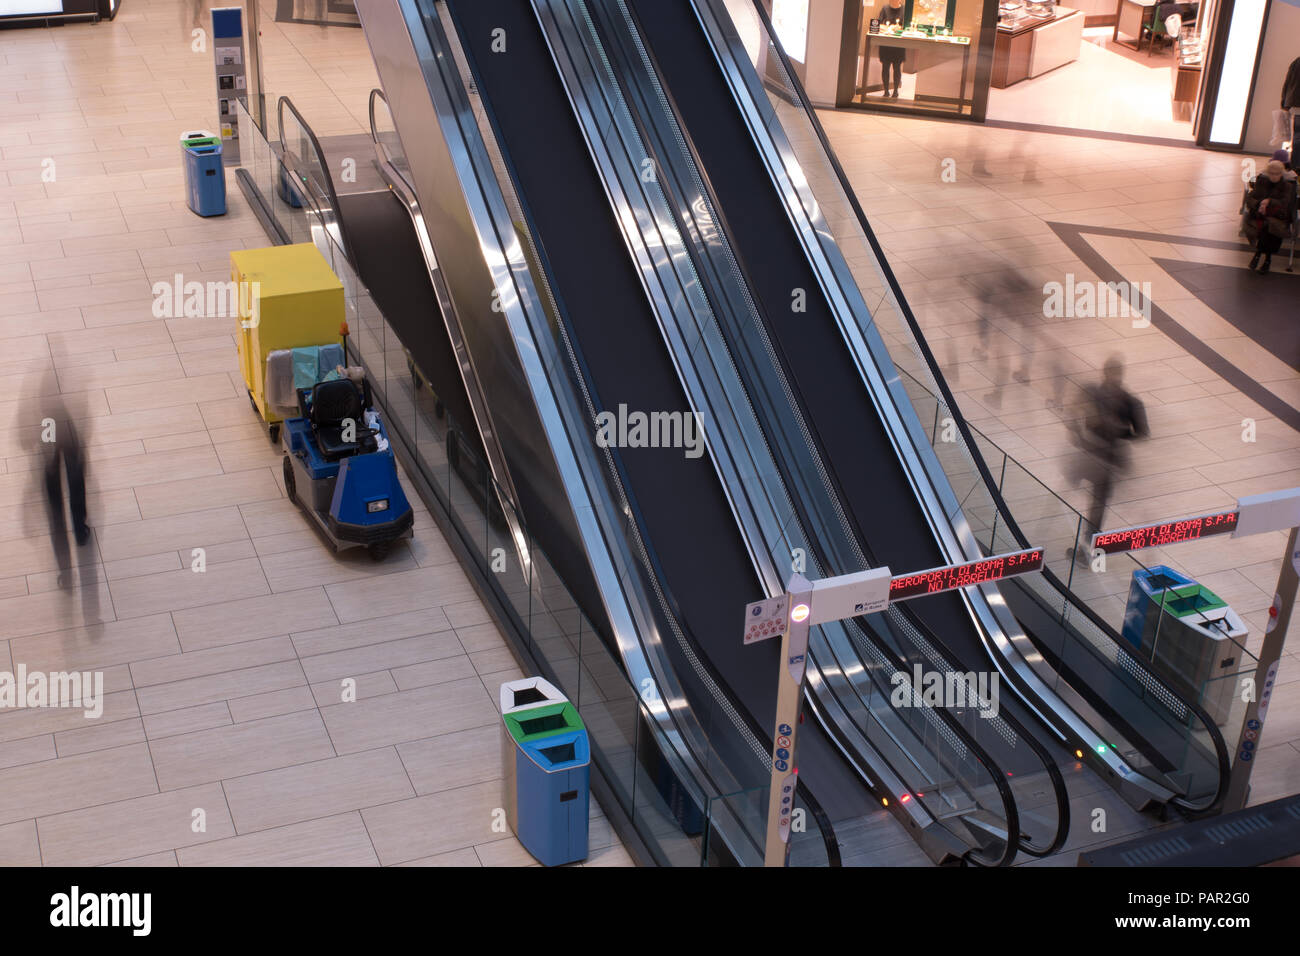 A Long exposure photograph of two escalators in Rome Airport terminal lounge with members of the public zipping past going to and from their flights - Stock Image